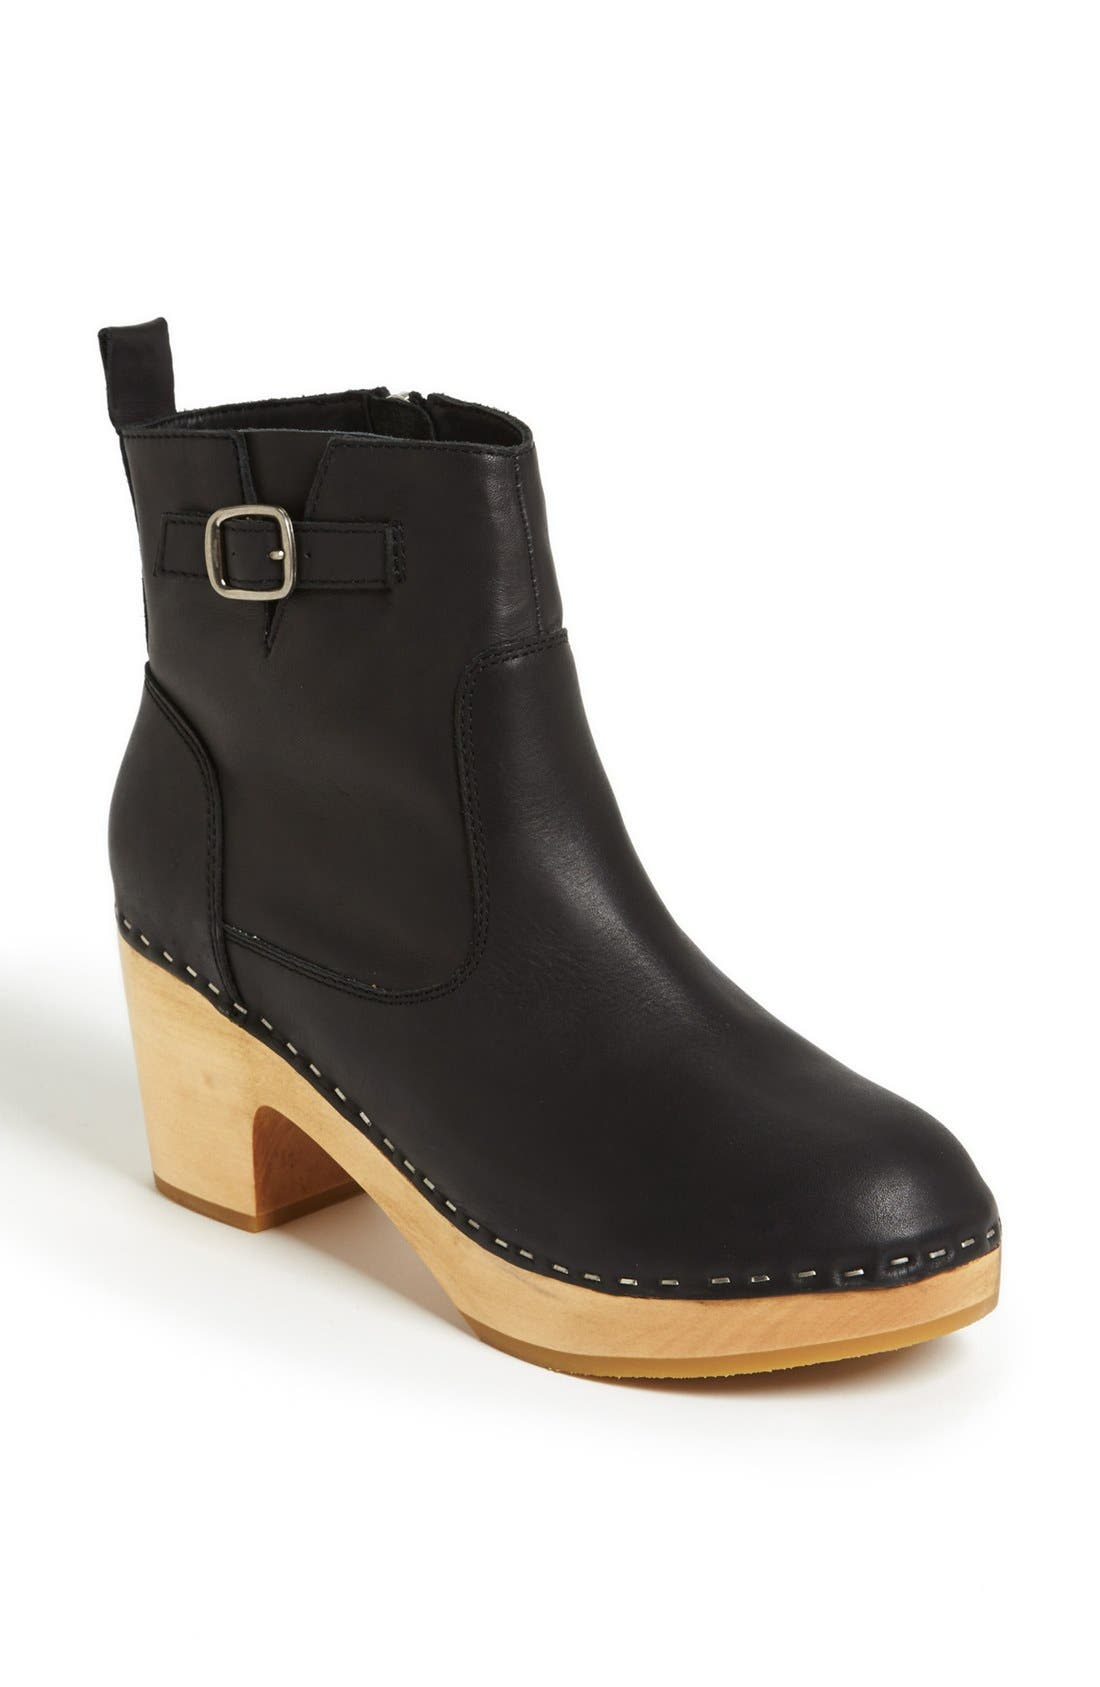 Alternate Image 1 Selected - Steve Madden 'Olaaf' Boot